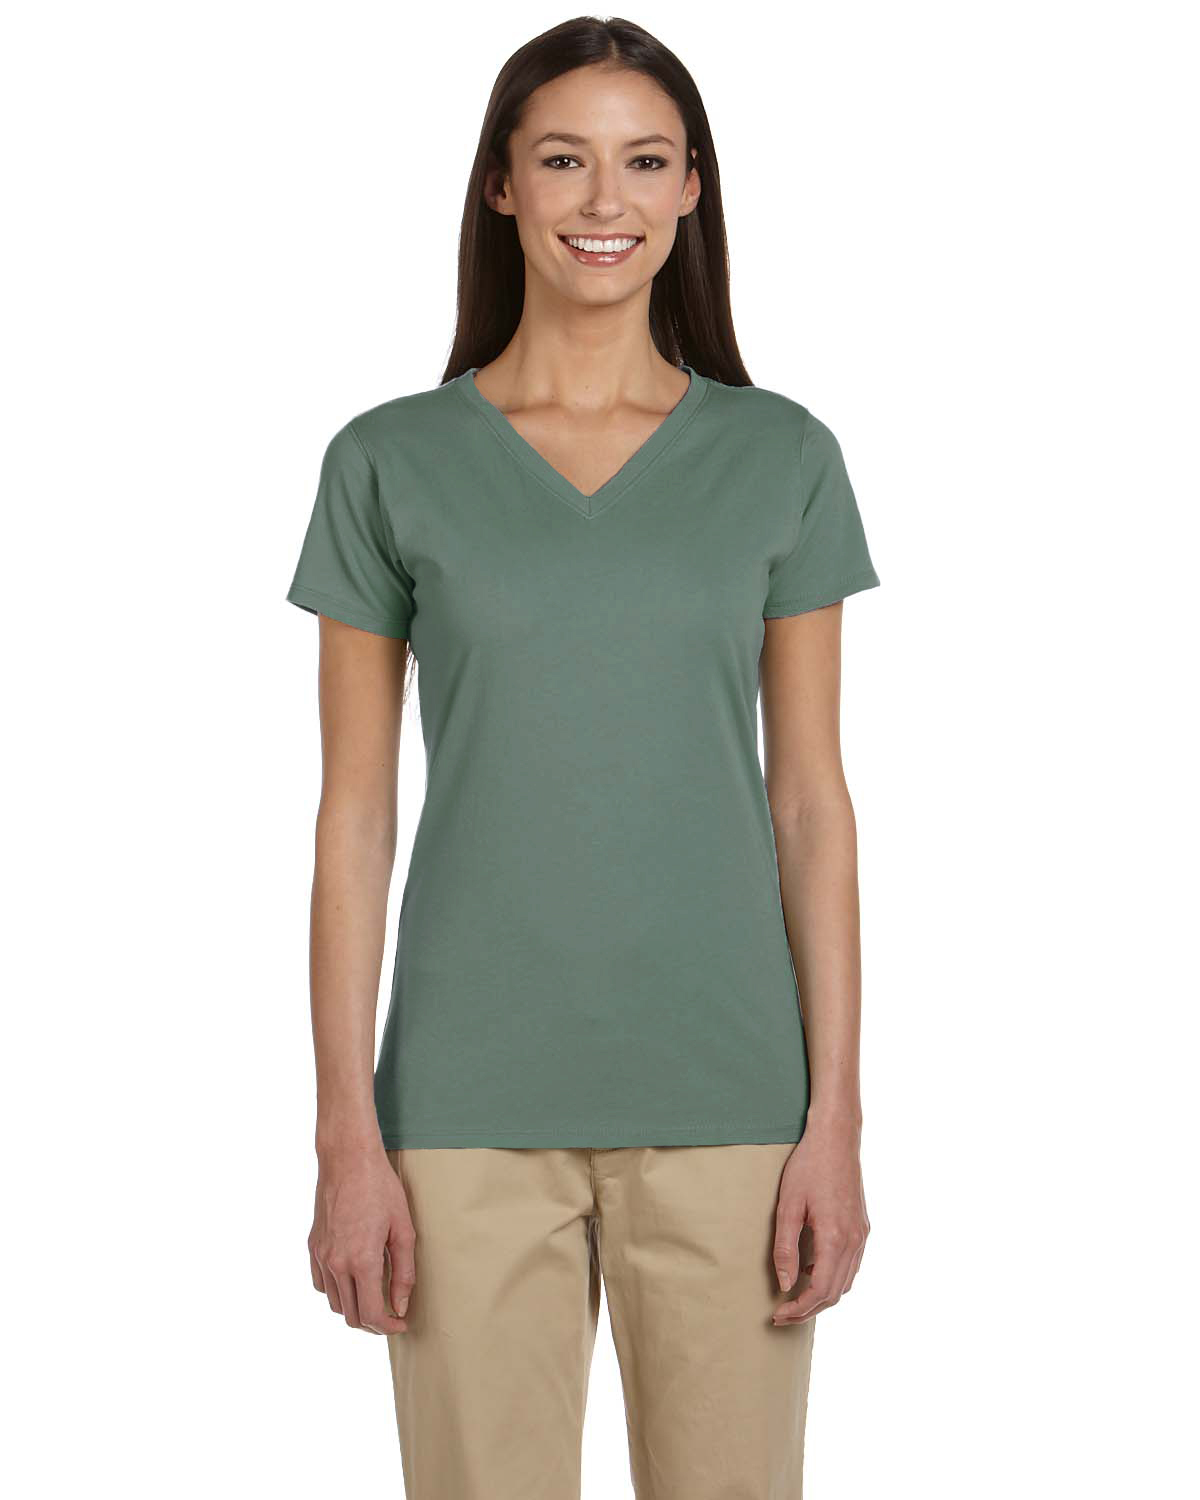 Certified organic cotton women 39 s short sleeve v neck t for Short sleeve t shirts with longer sleeves